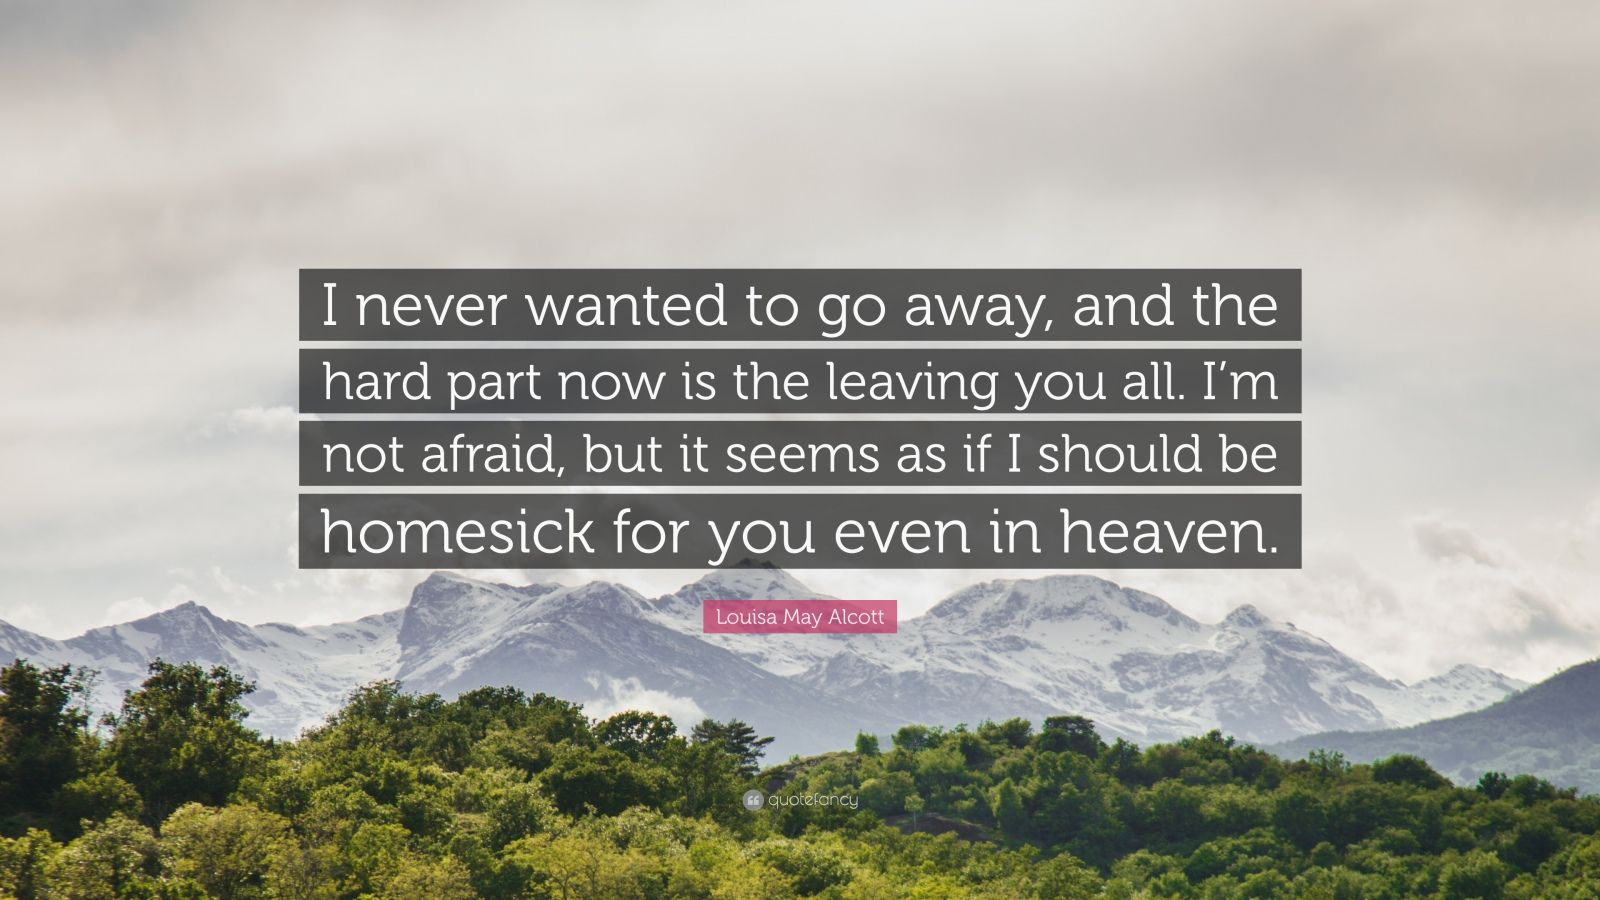 """Louisa May Alcott Quote: """"I never wanted to go away, and the hard part now is the leaving you all. I'm not afraid, but it seems as if I should be homesick for you even in heaven."""""""